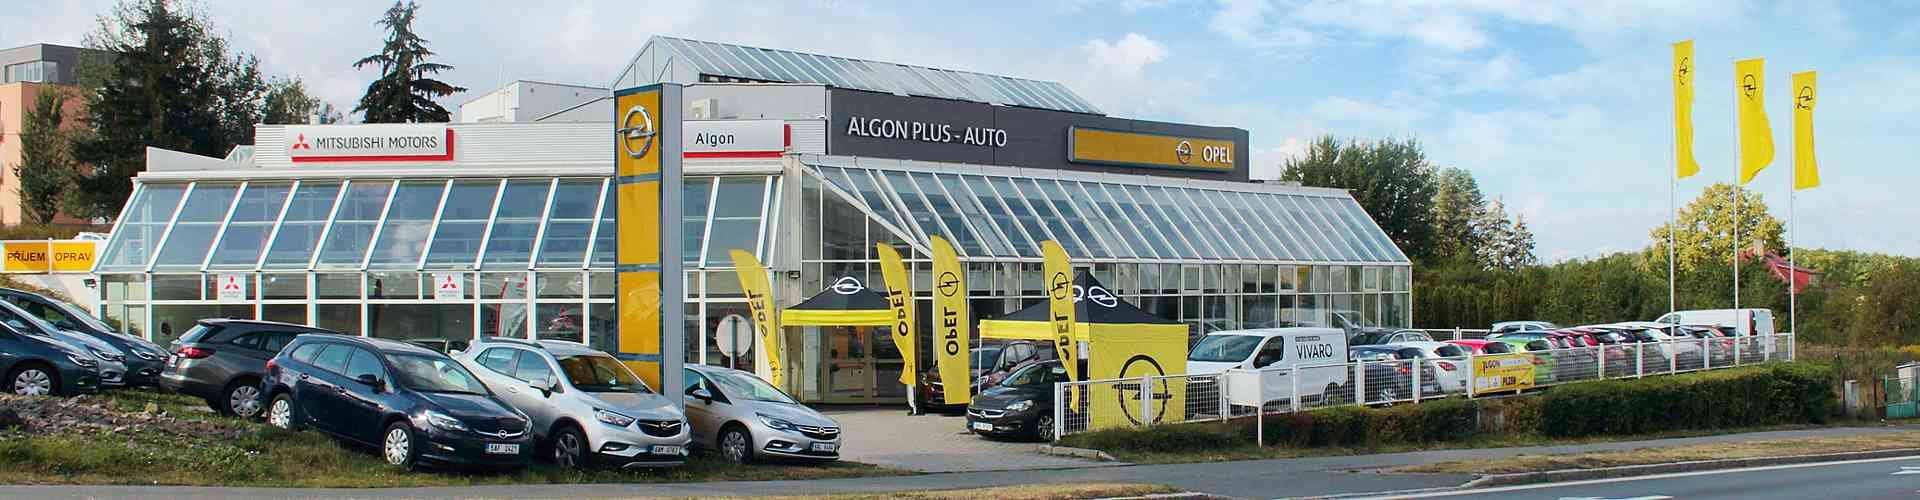 algon-dealerstvi-plzen-1920x500.jpg